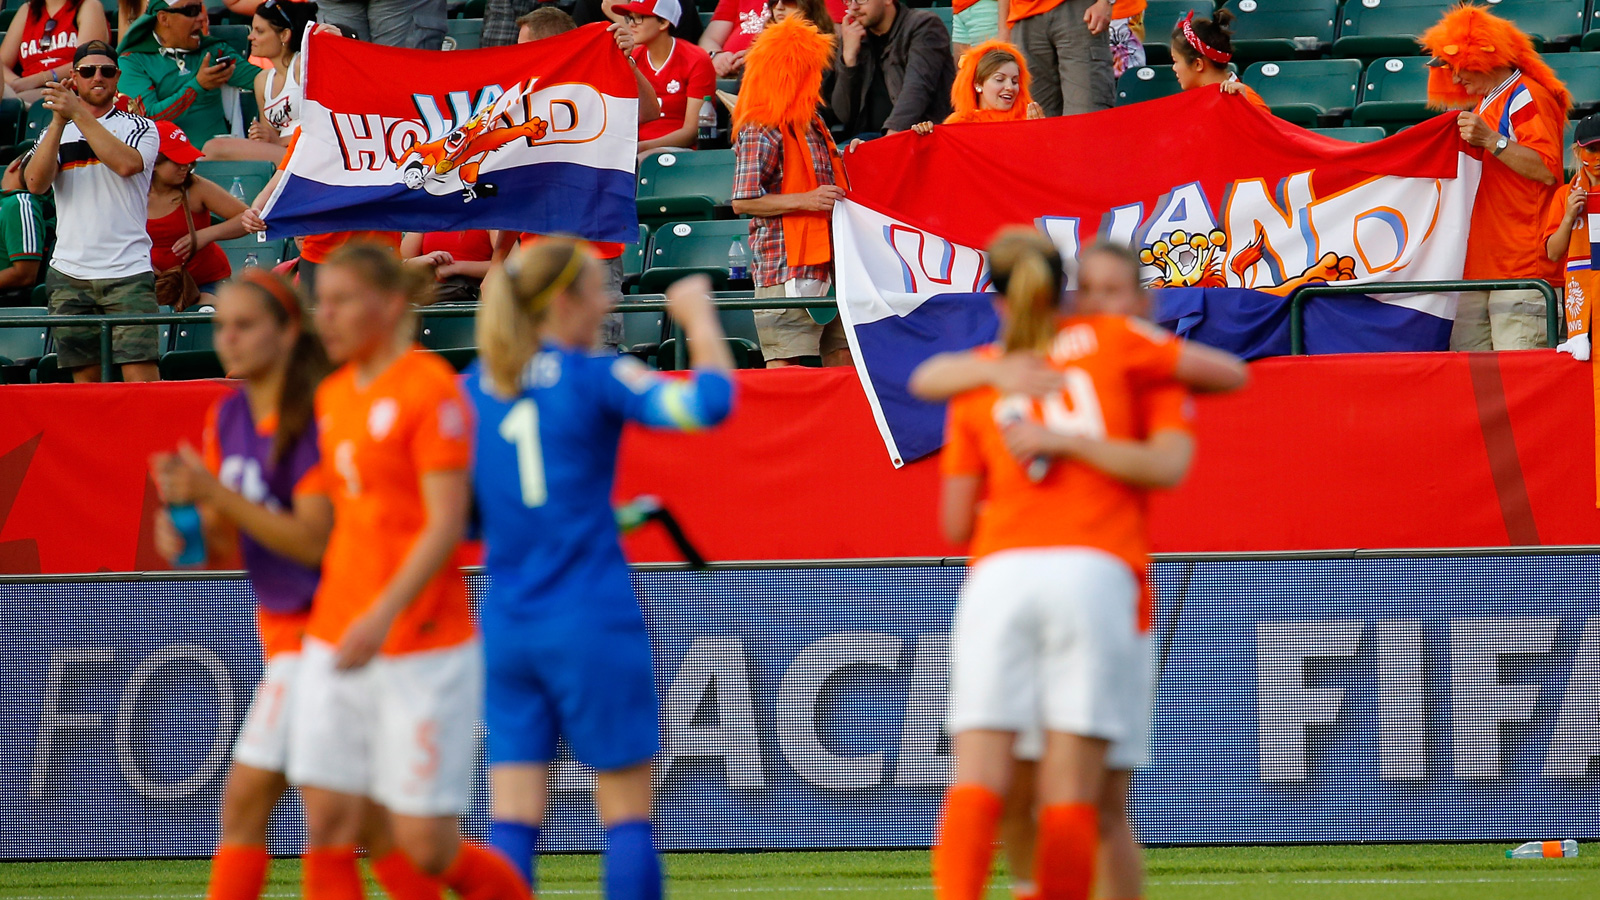 Netherlands players celebrate a 1-0 win over New Zealand, the nation's first win in a Women's World Cup.